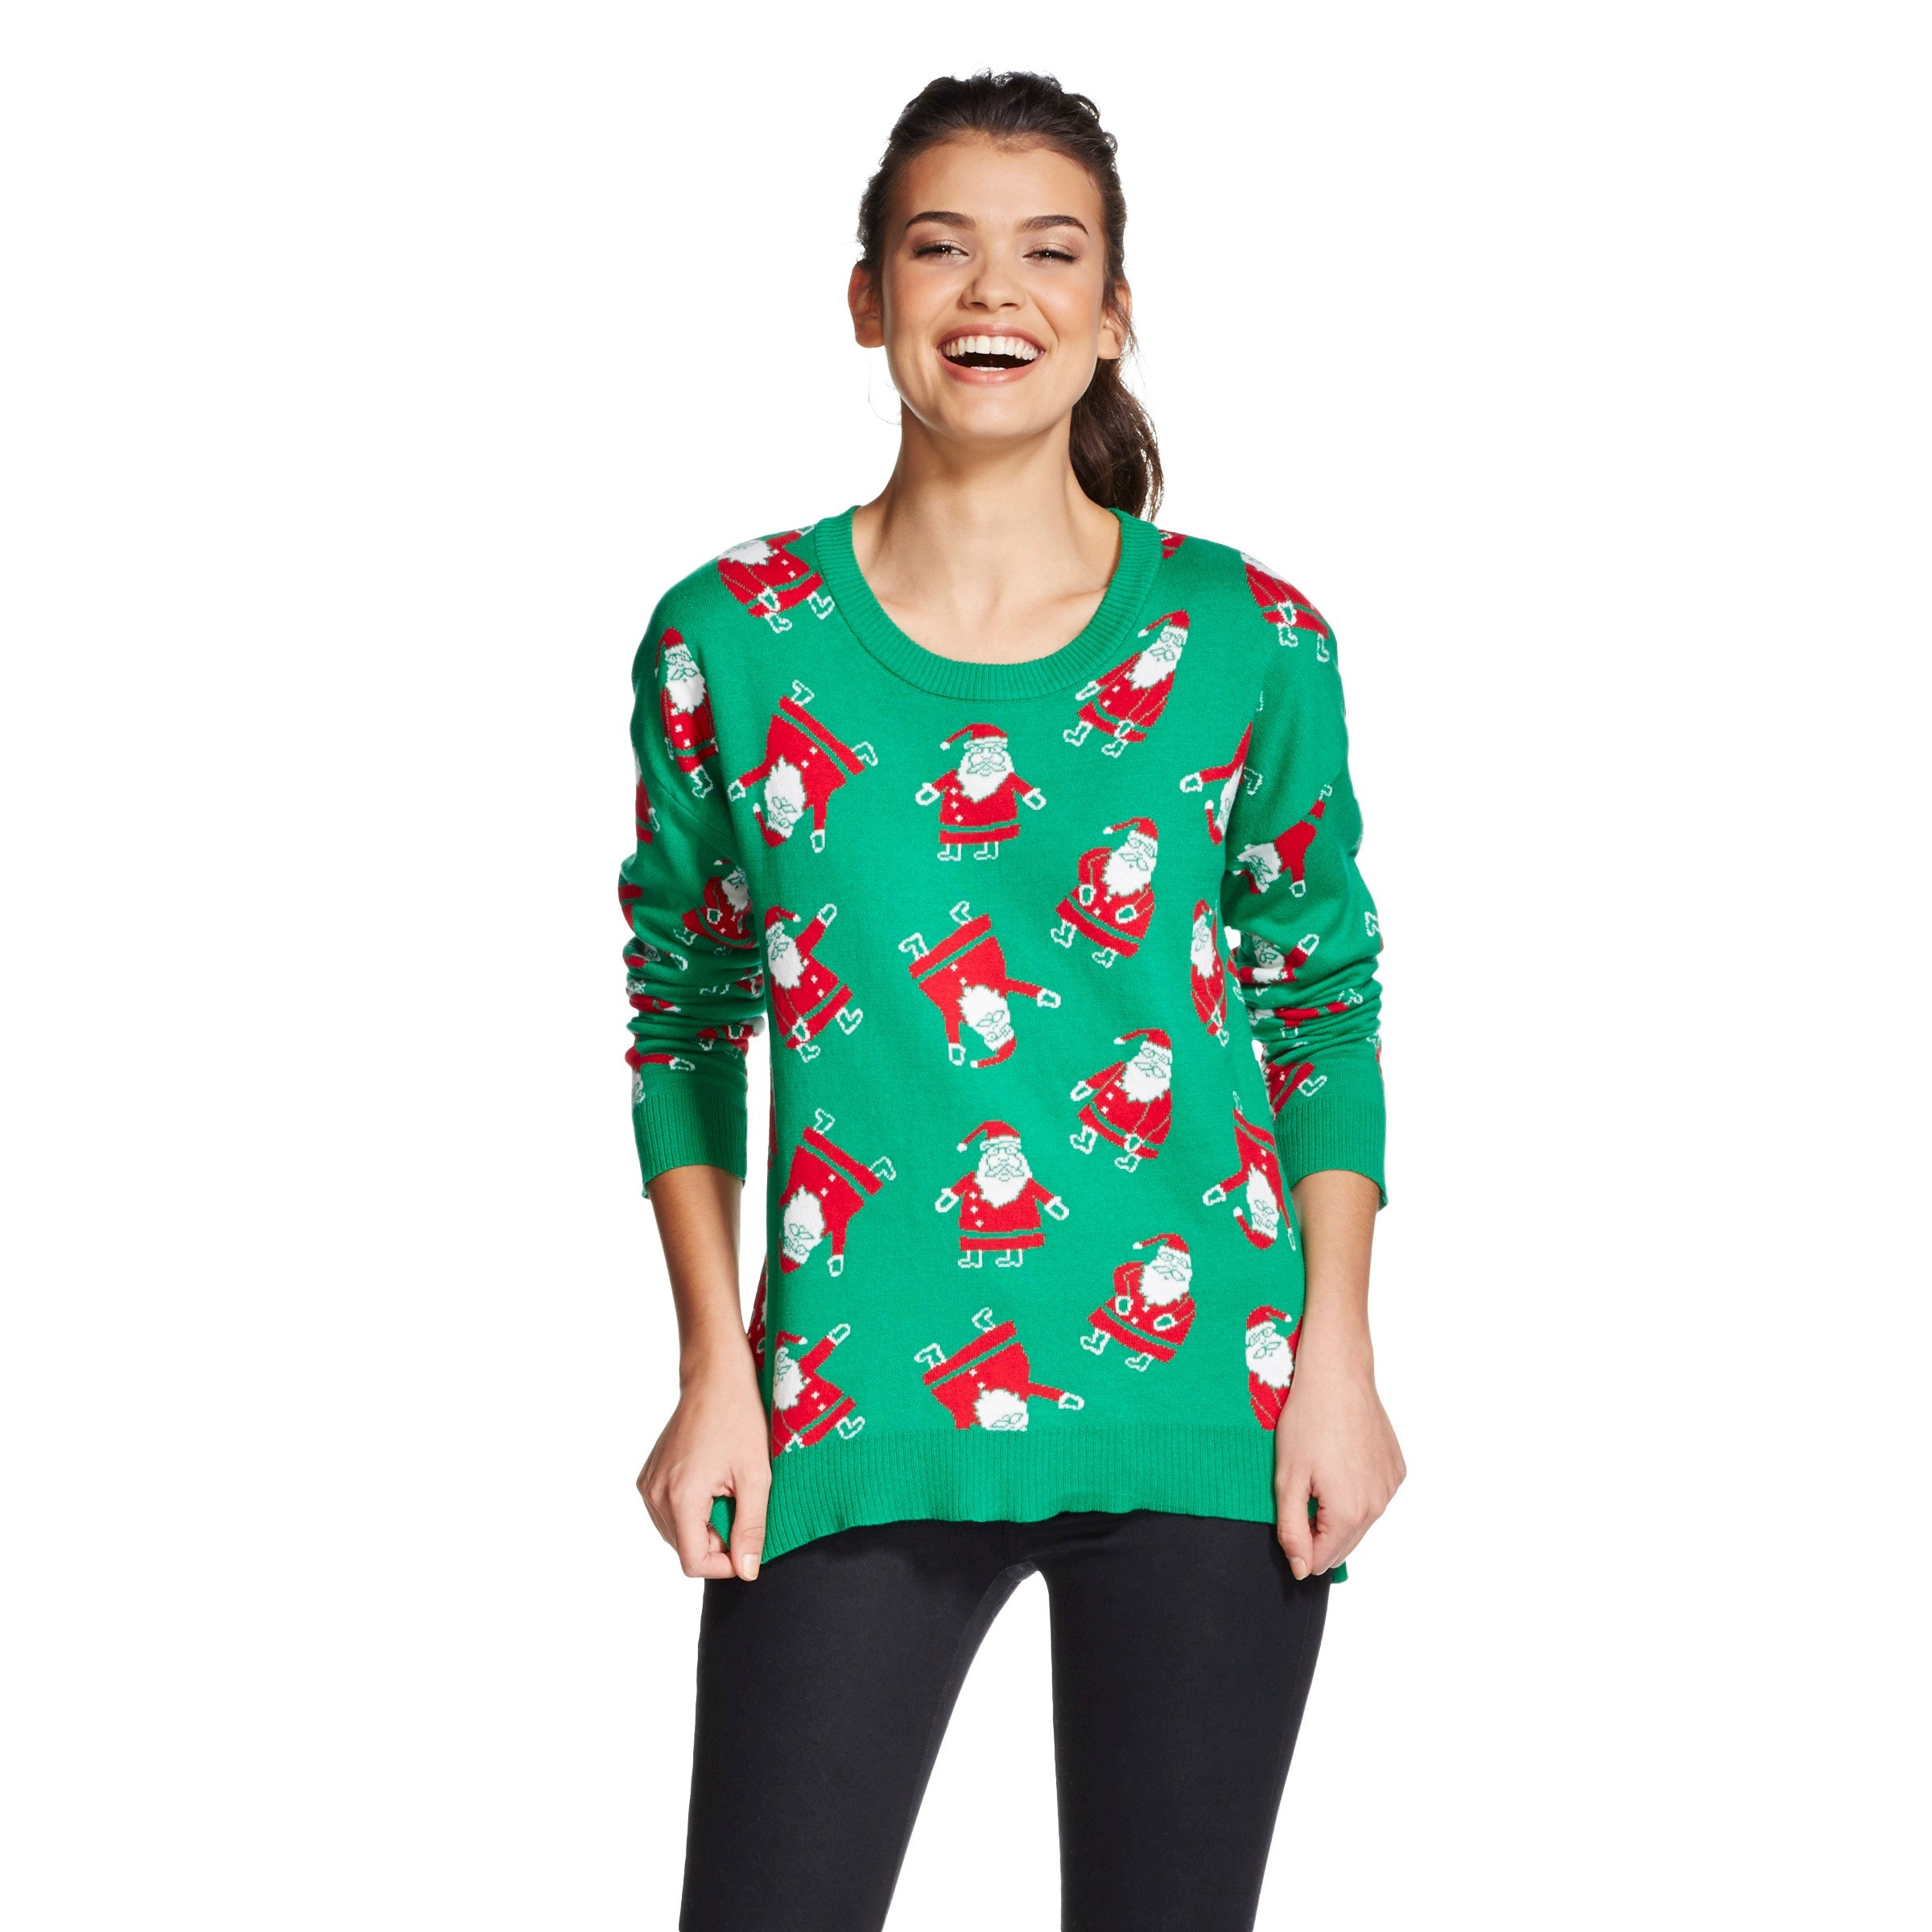 15 Cute Ugly Sweaters For Every Holiday Party On Your Calendar — PHOTOS